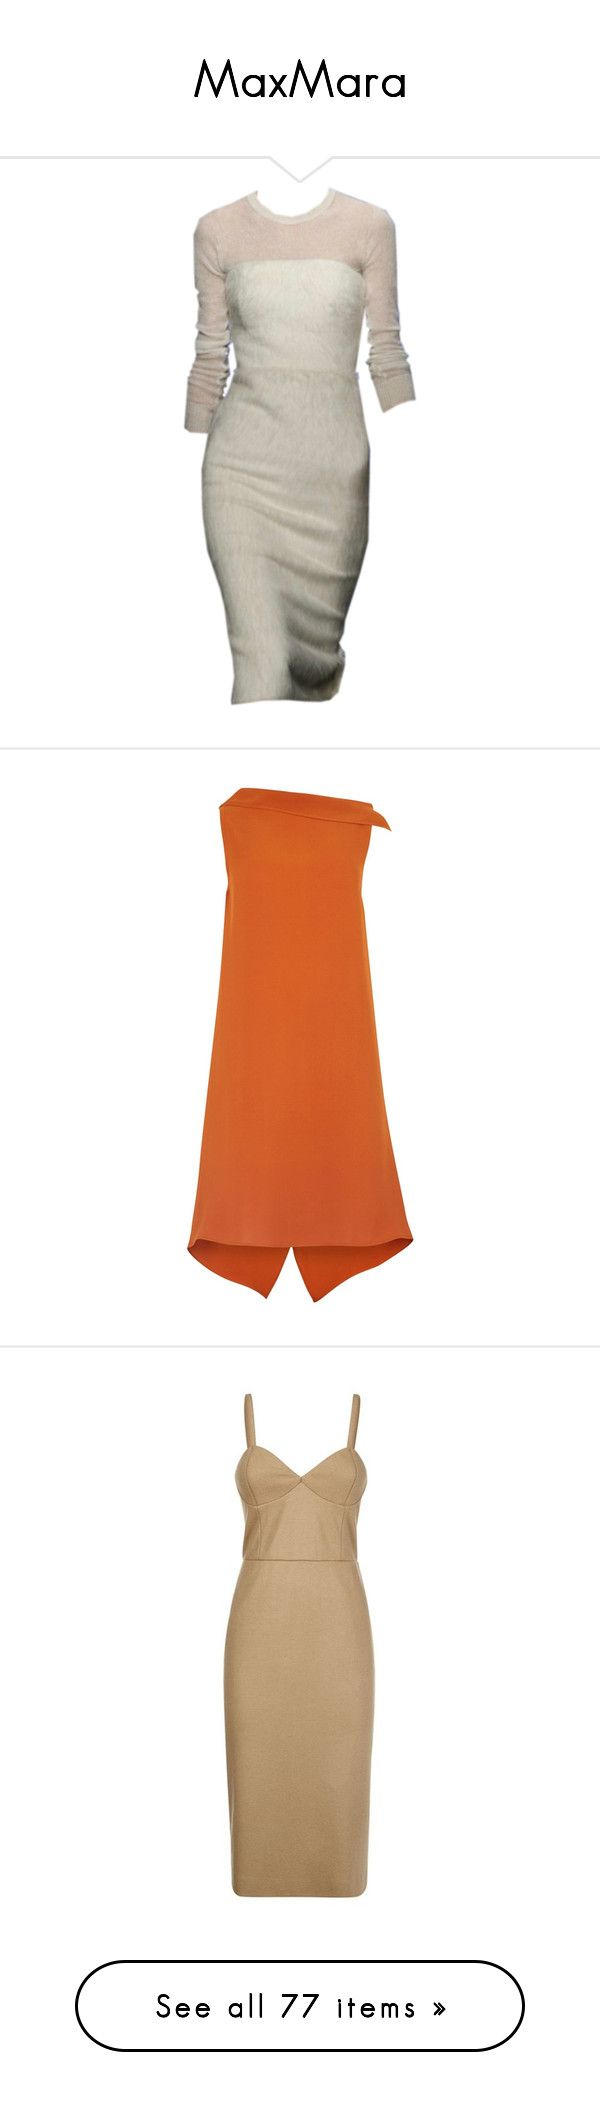 """""""MaxMara"""" by bliznec-anna ❤ liked on Polyvore featuring dresses, maxmara, skirts, draped cocktail dress, orange cocktail dress, maxmara dress, asymmetrical cocktail dress, below the knee dresses, below knee dresses and wool dress"""